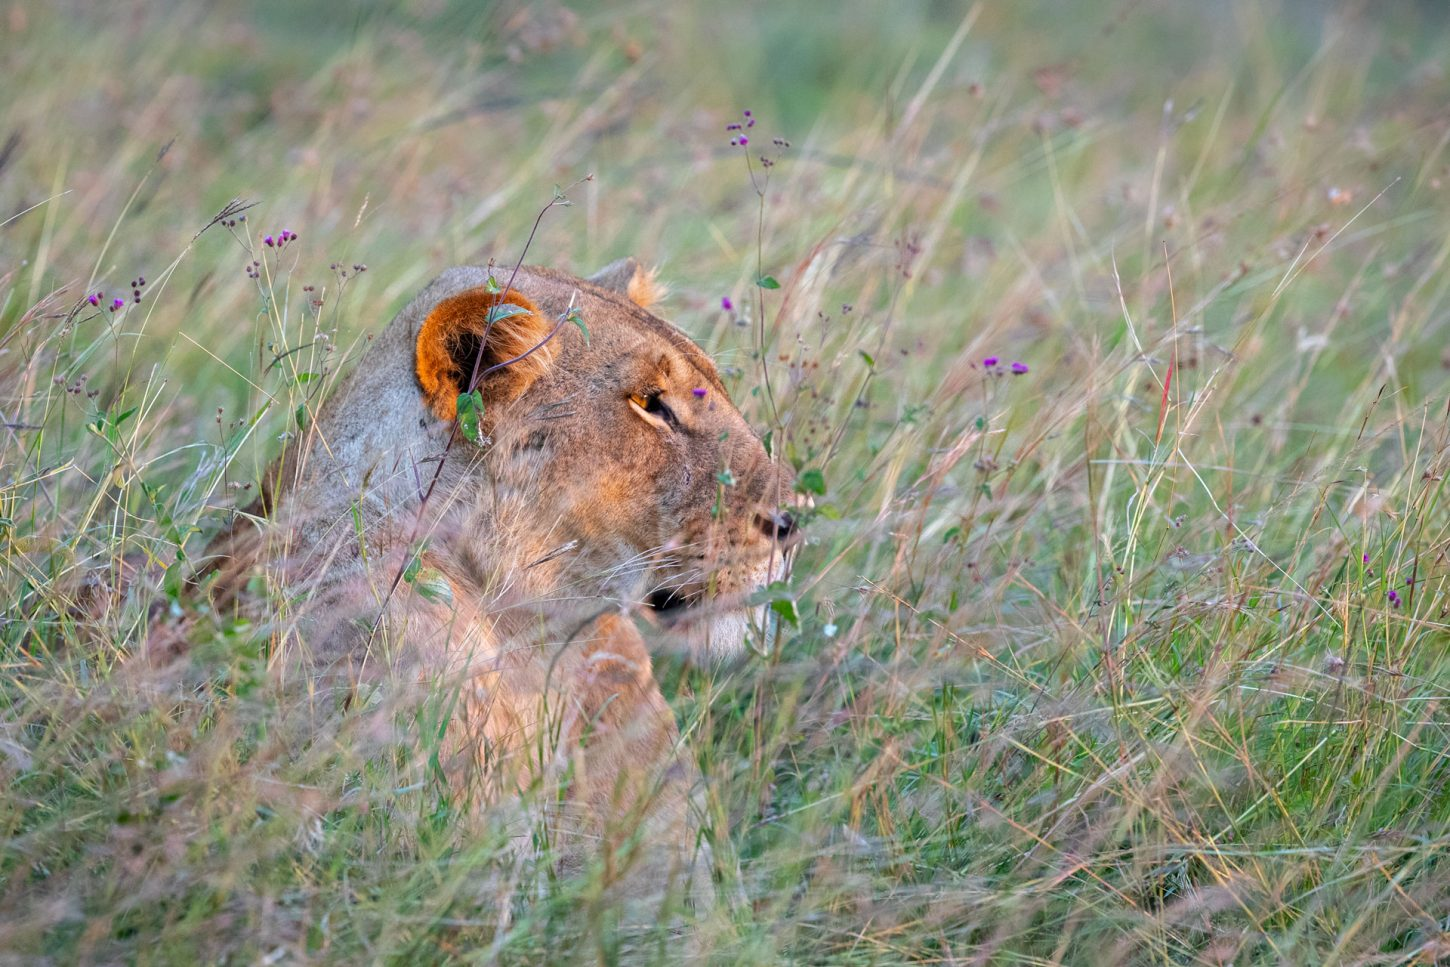 Lion lying in grass and purple flowers